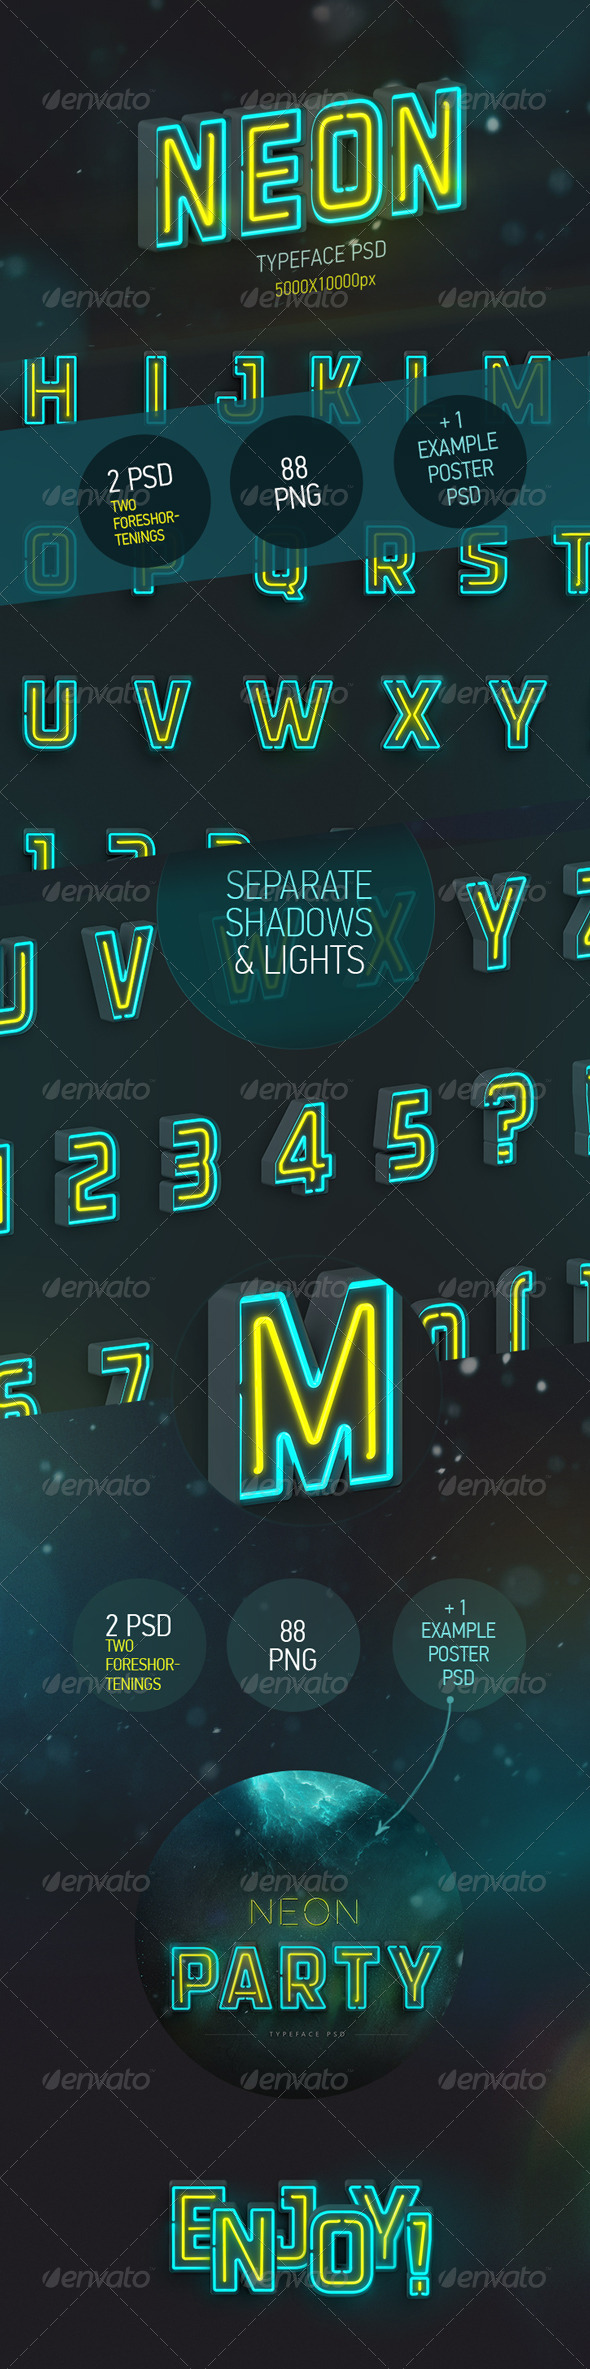 GraphicRiver Neon Typeface 3 PSD 88 PNG 7789963